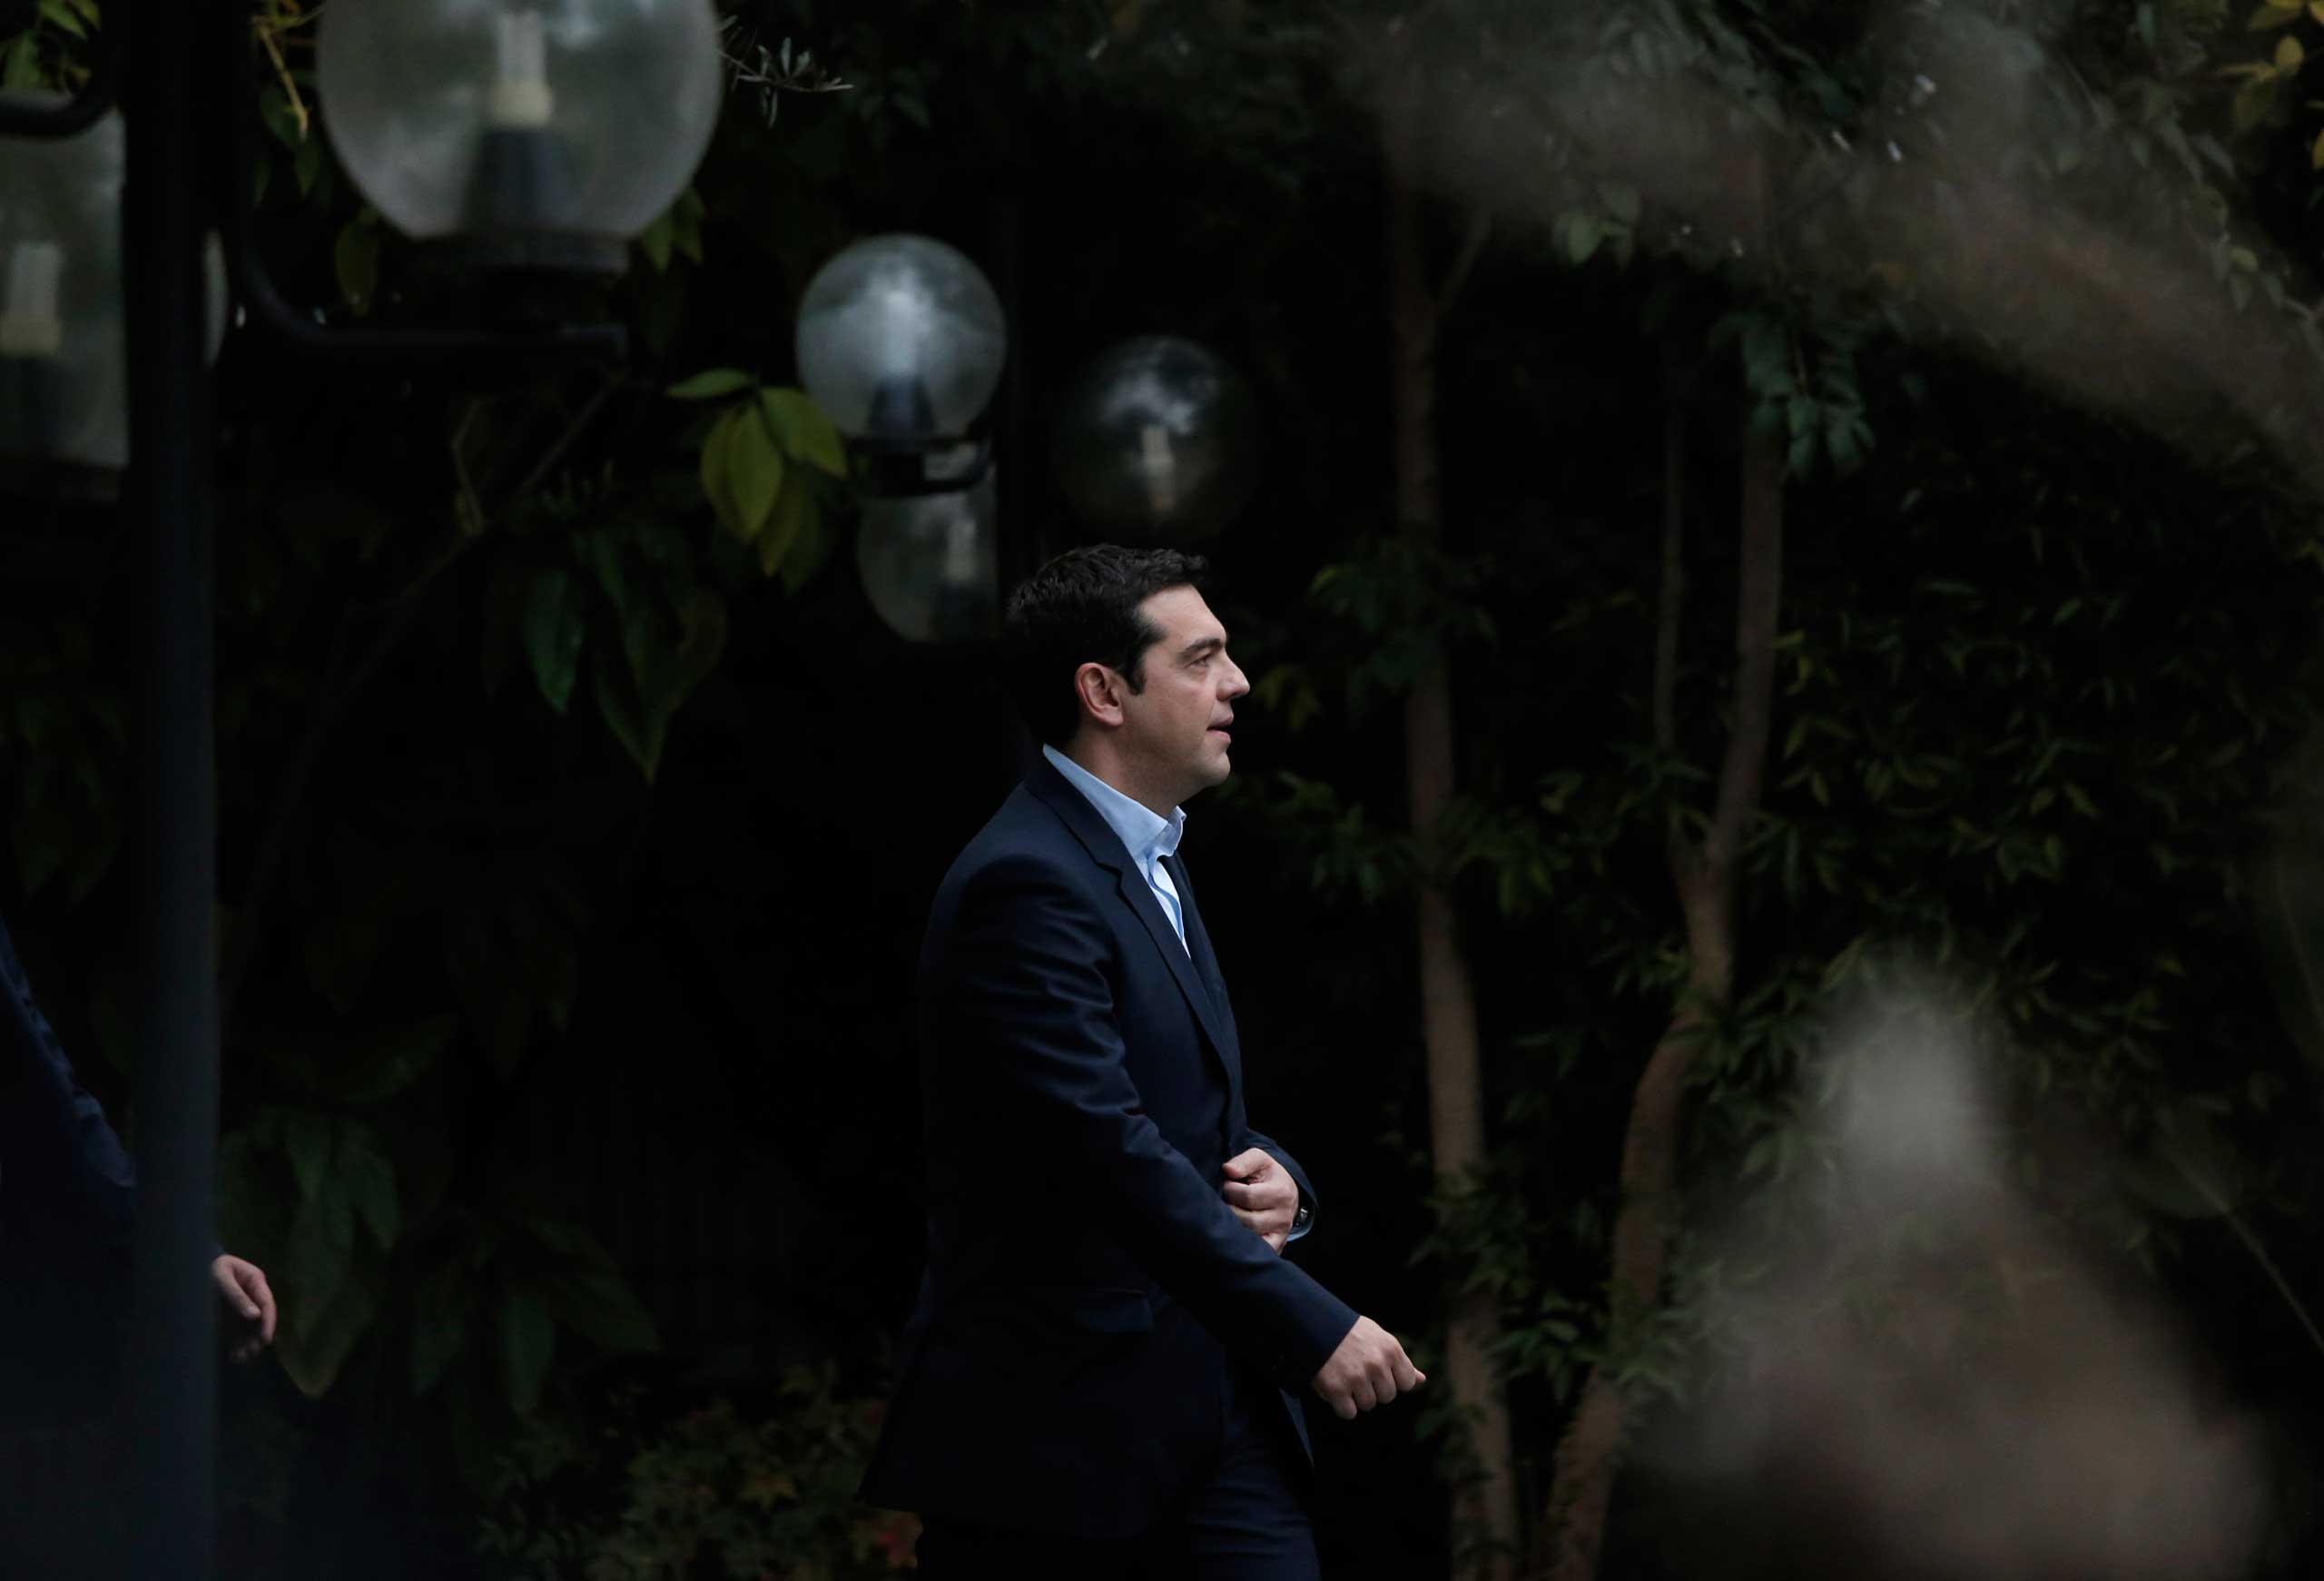 Greece's new Prime Minister Alexis Tsipras arrives at Maximos Mansion, the Greek Prime Minister's official residence in central Athens, Jan. 26, 2015.